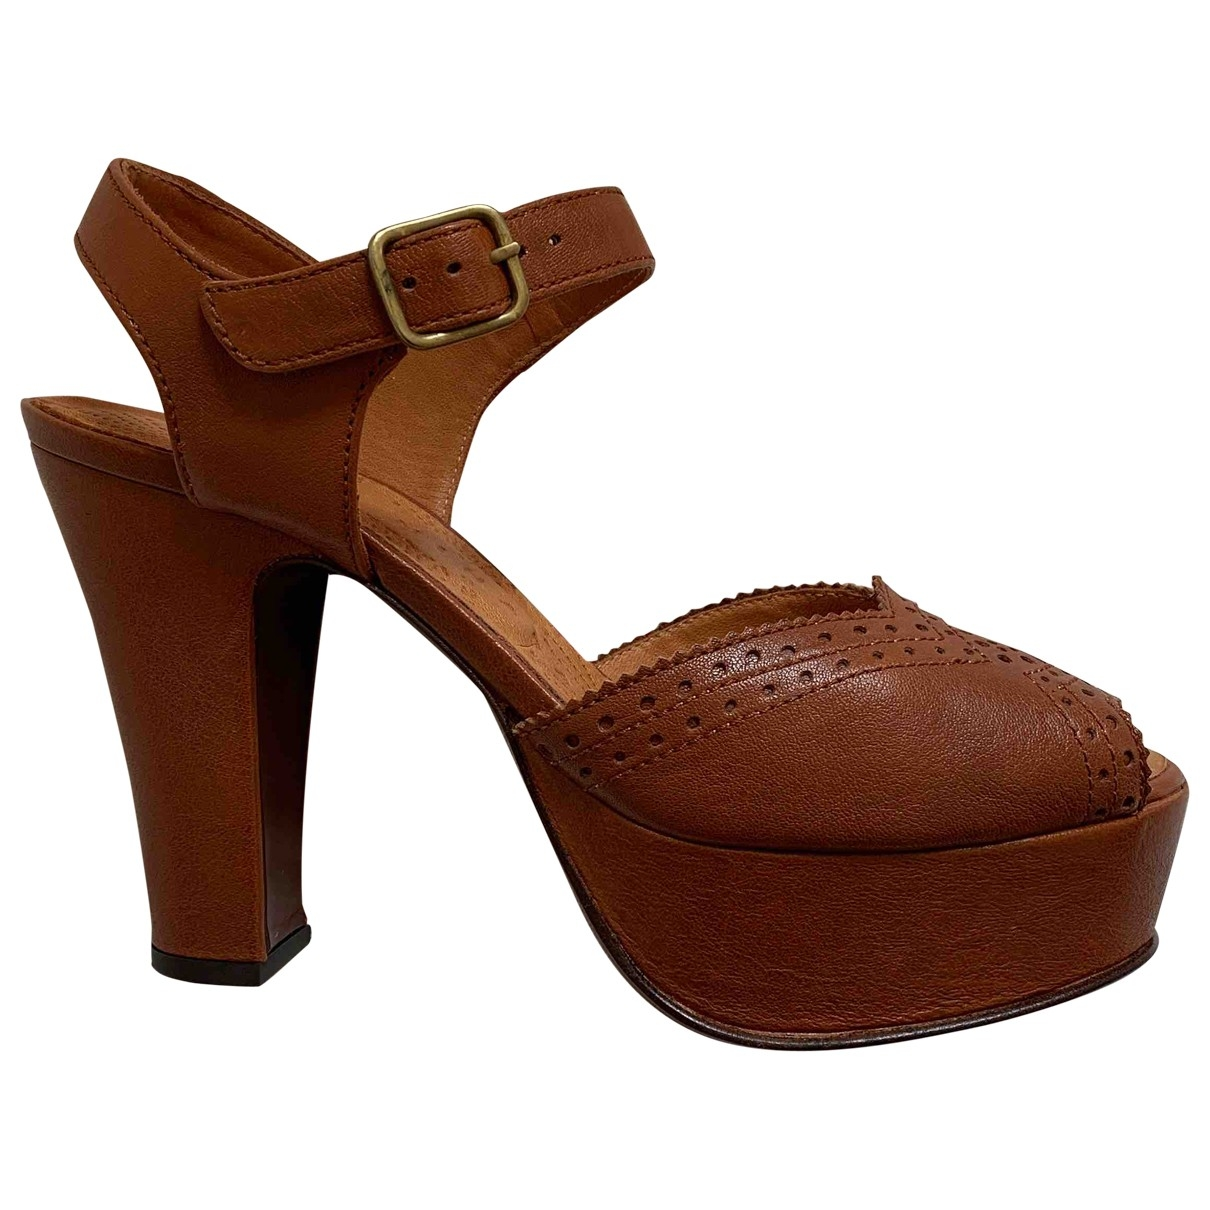 Chie Mihara \N Brown Leather Sandals for Women 38.5 EU